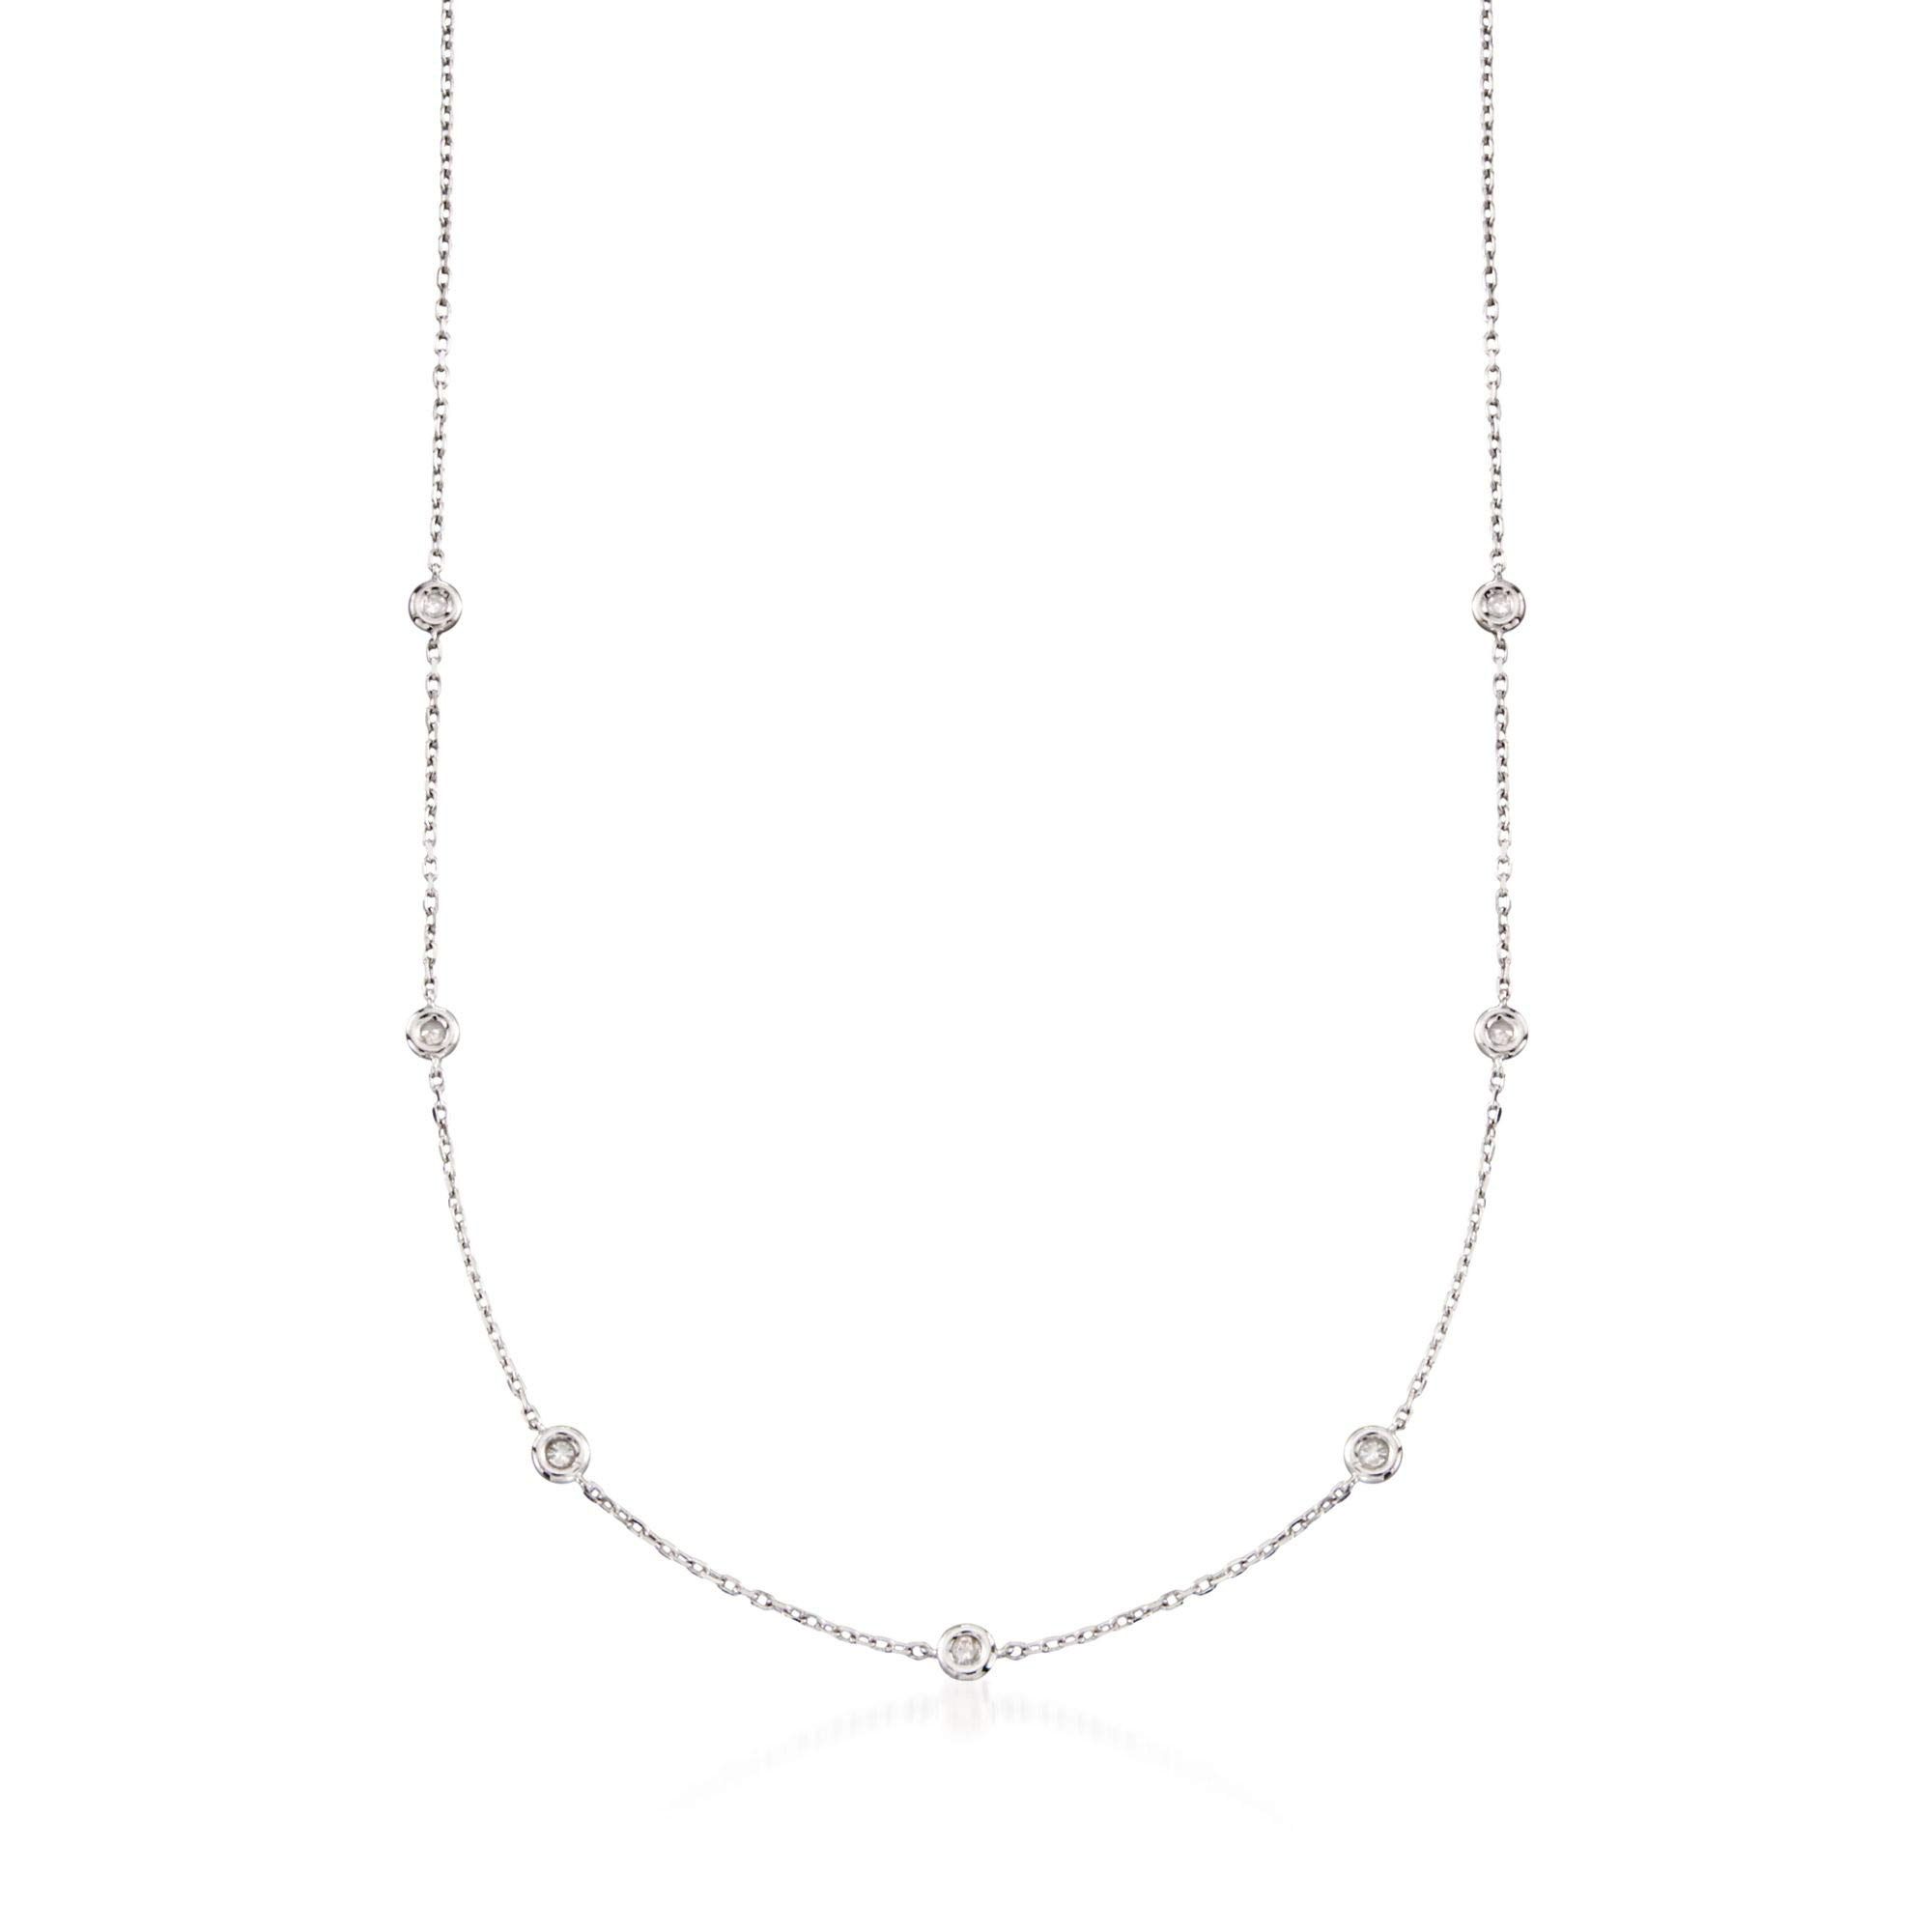 Ross-Simons 0.20 ct. t.w. Diamond Station Necklace in Sterling Silver